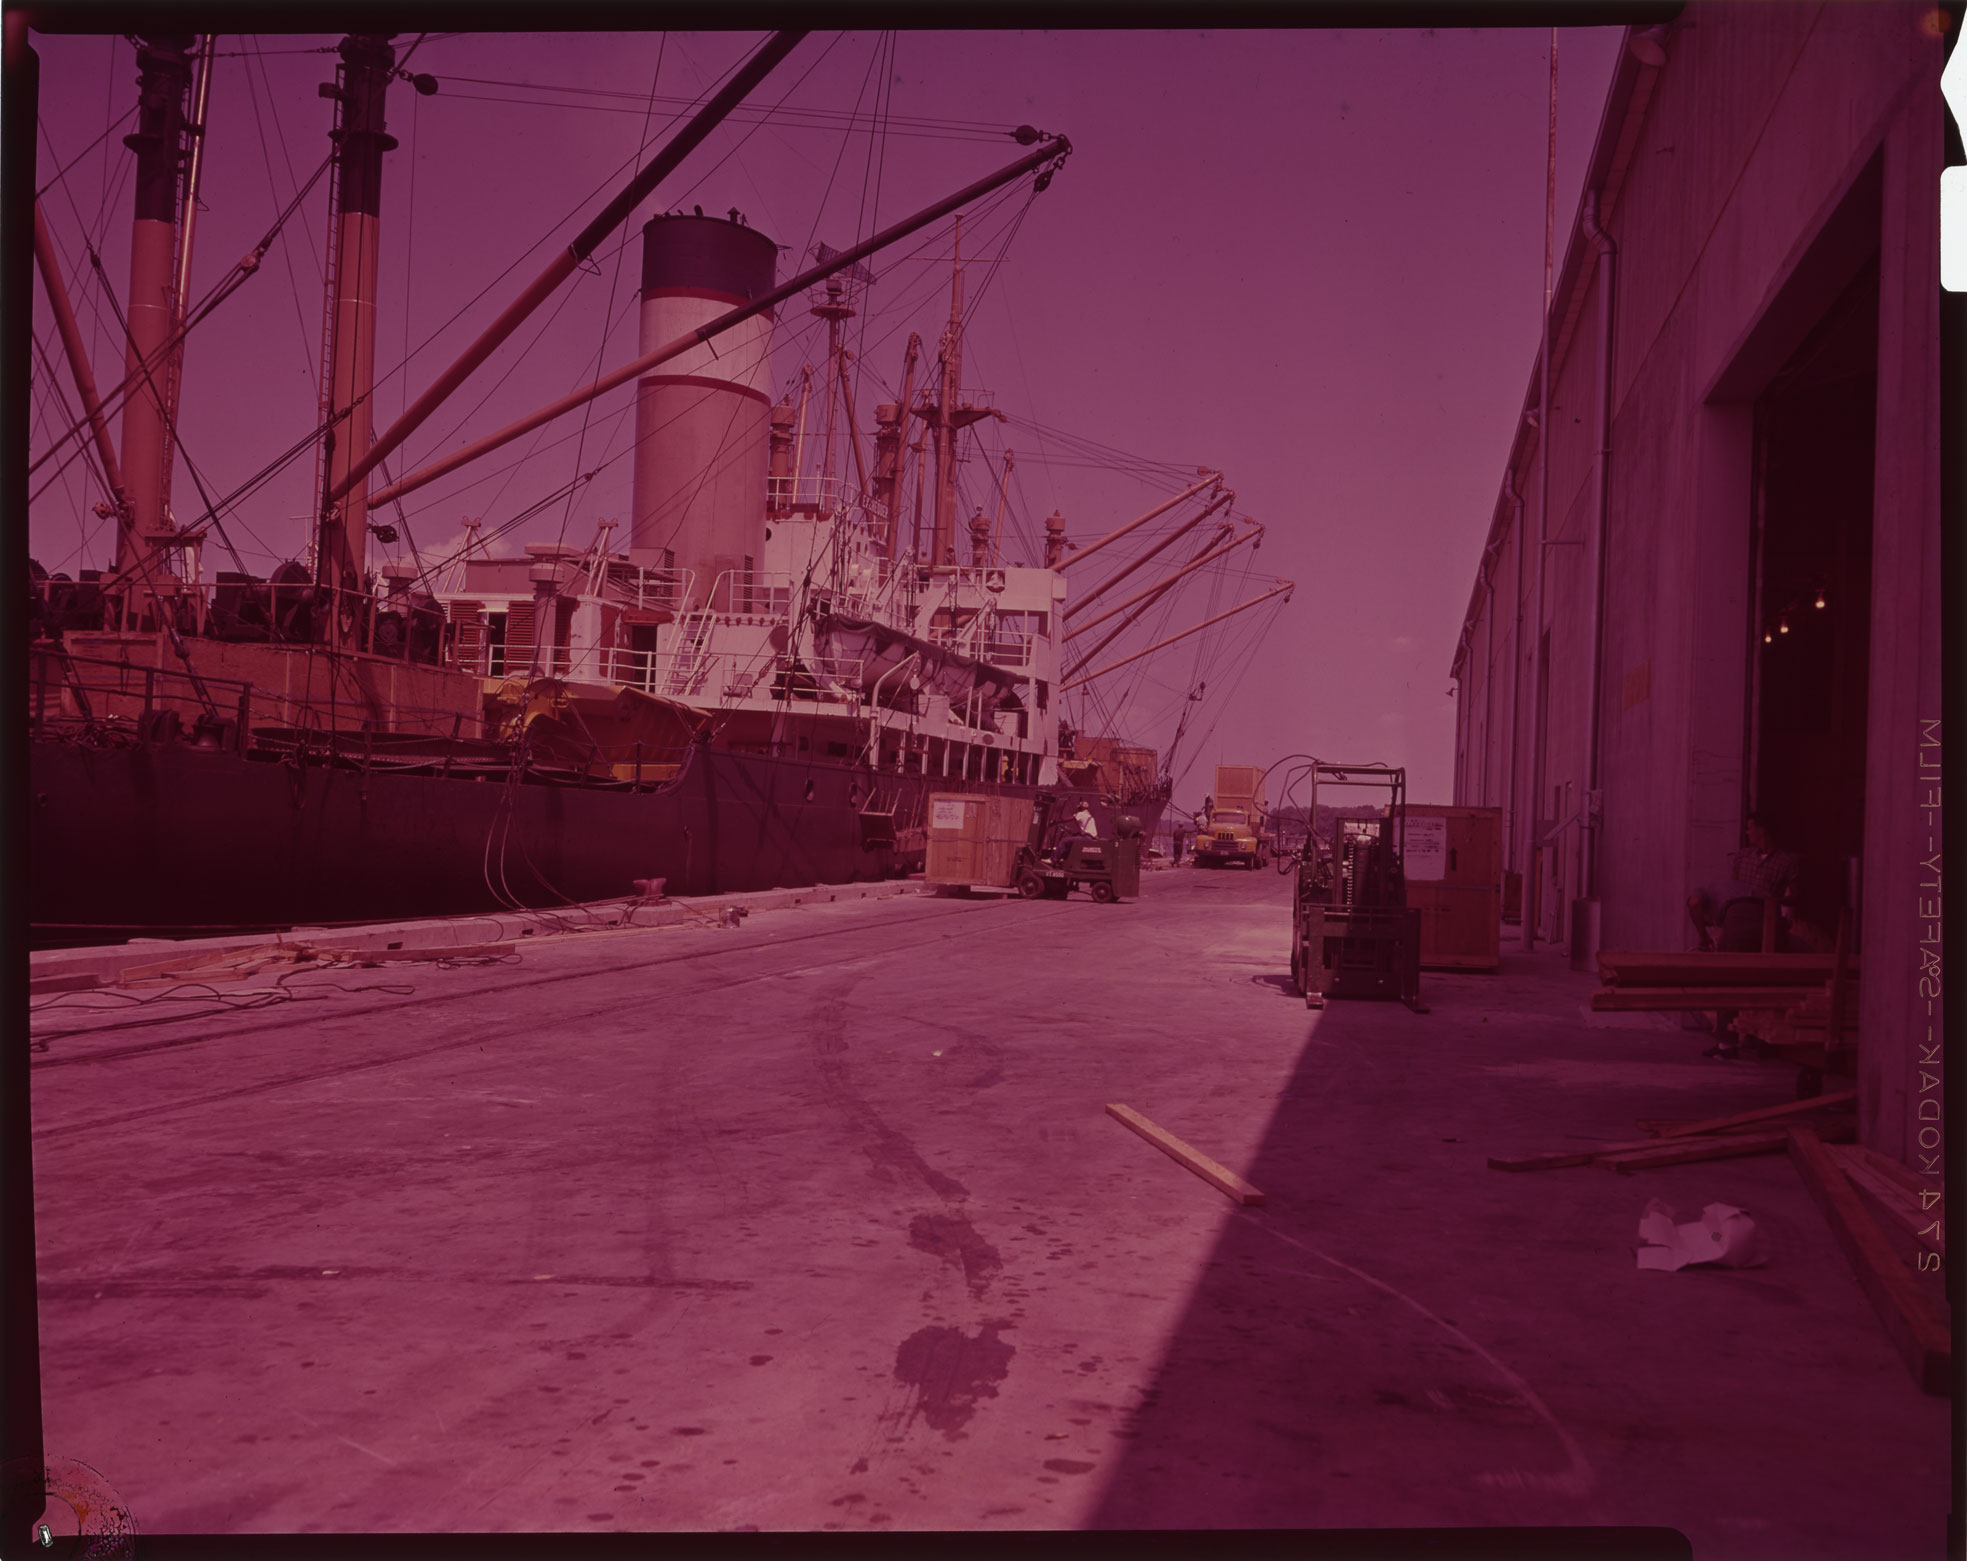 Unloading a cargo ship at the Port of Port Royal